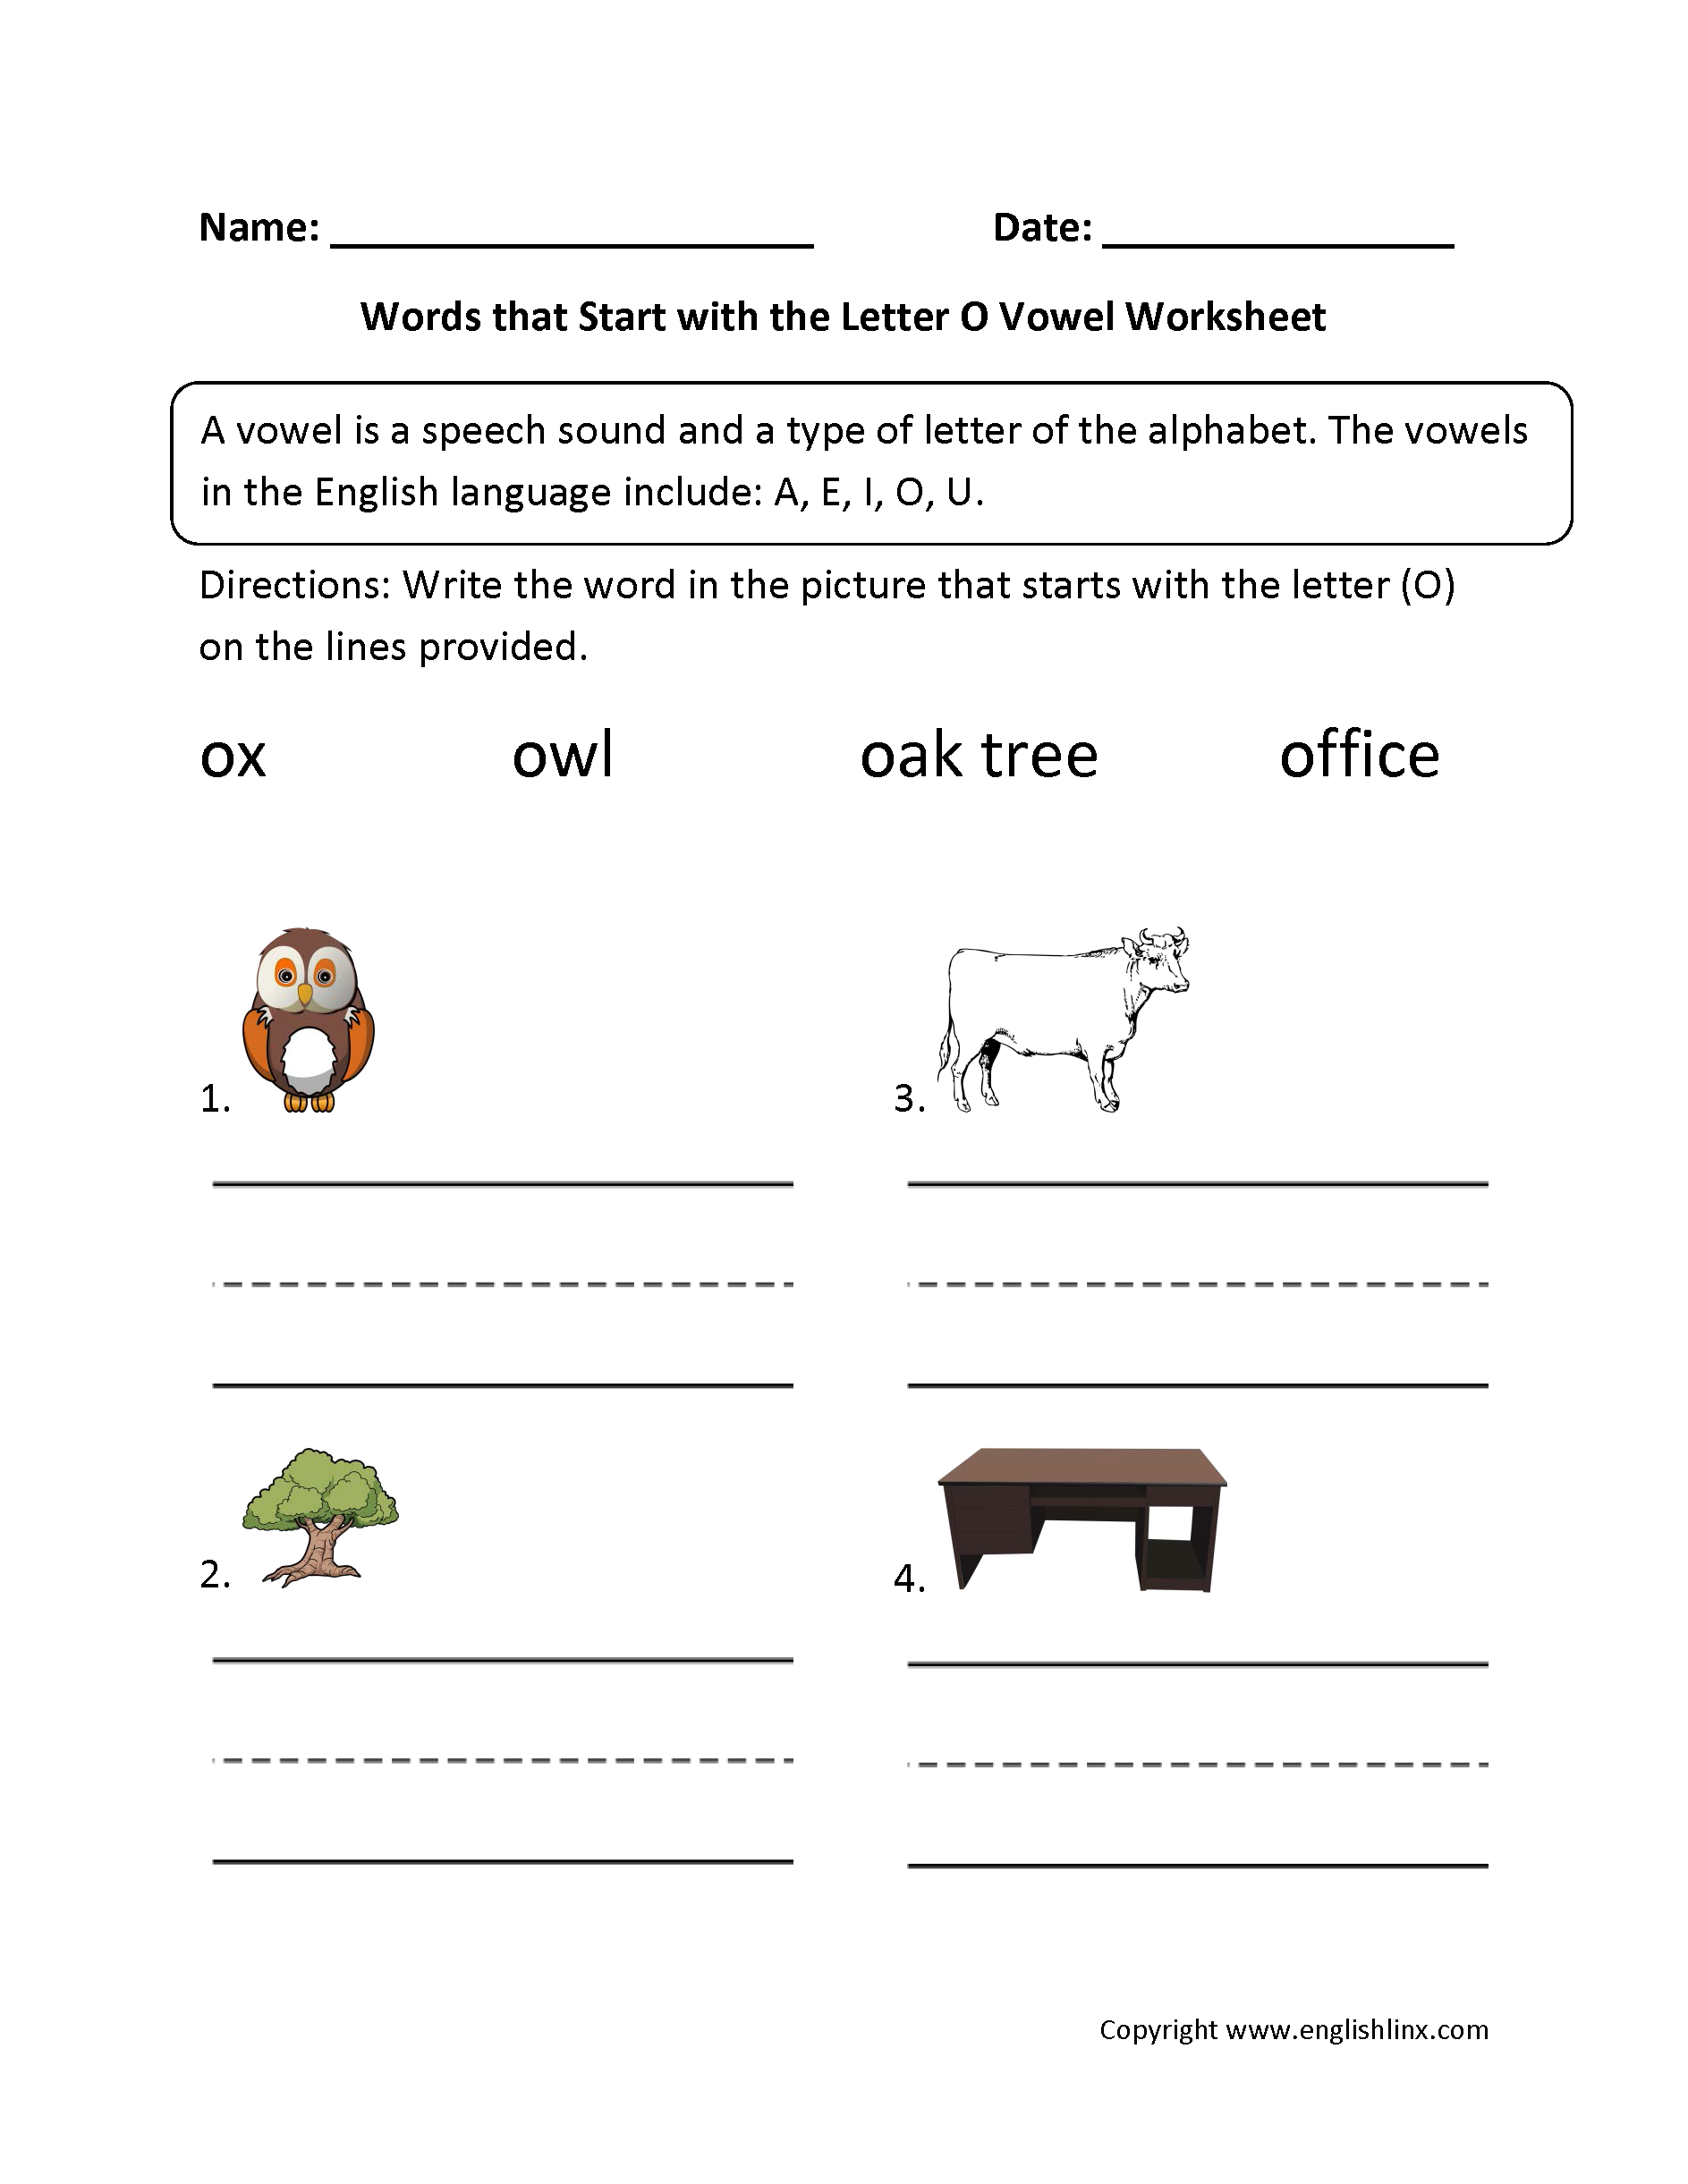 Words Start Letter O Vowel Worksheets